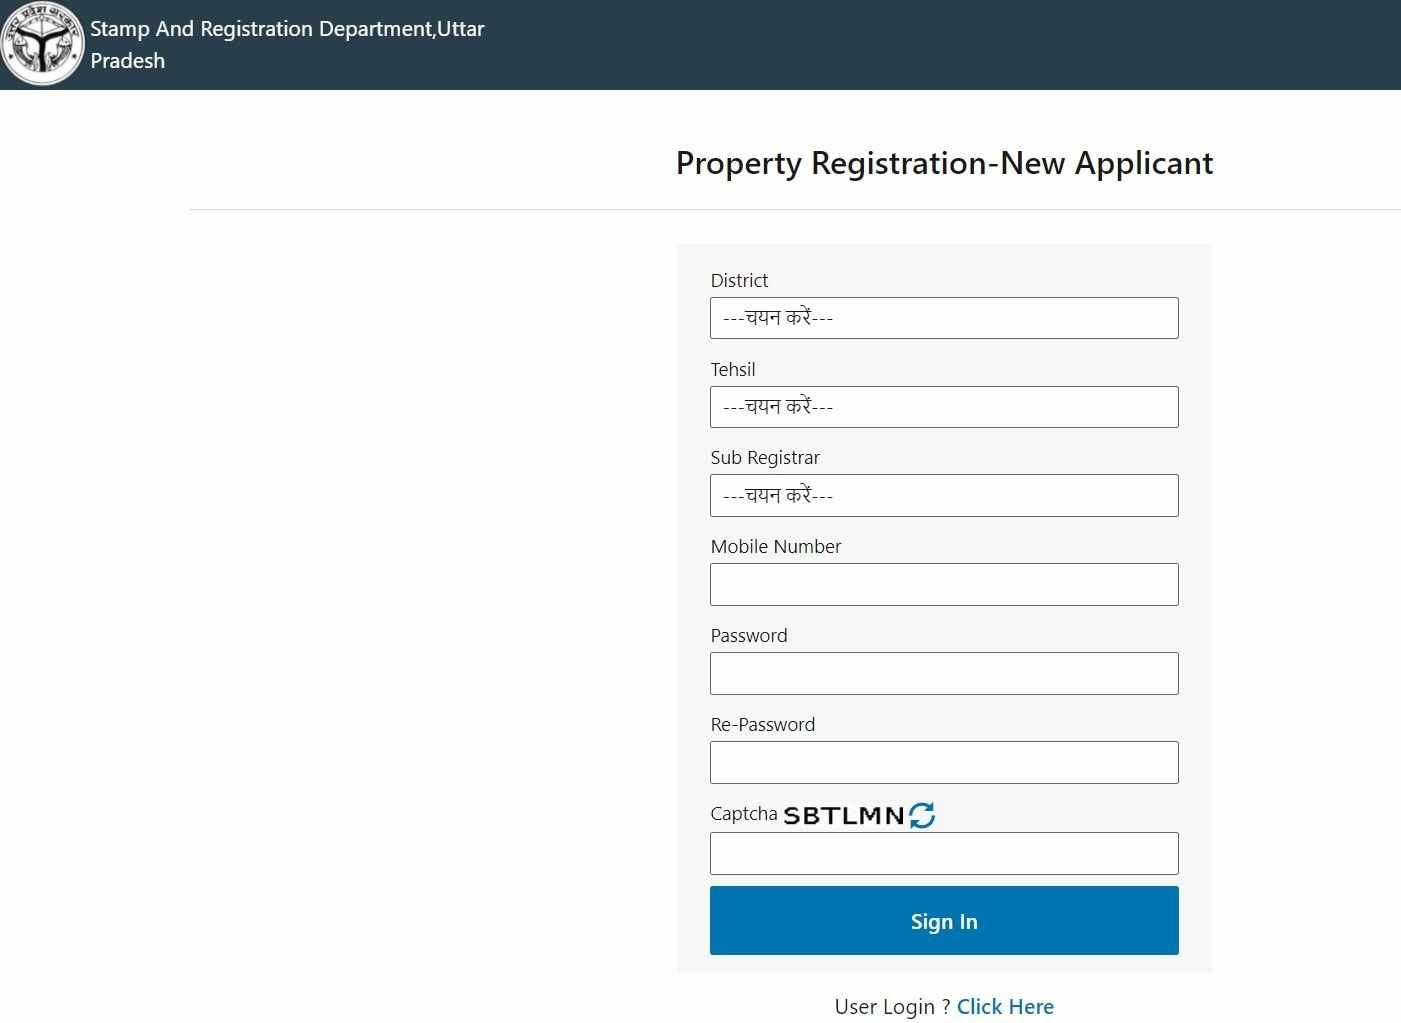 What Is The Purpose Of Property Registration